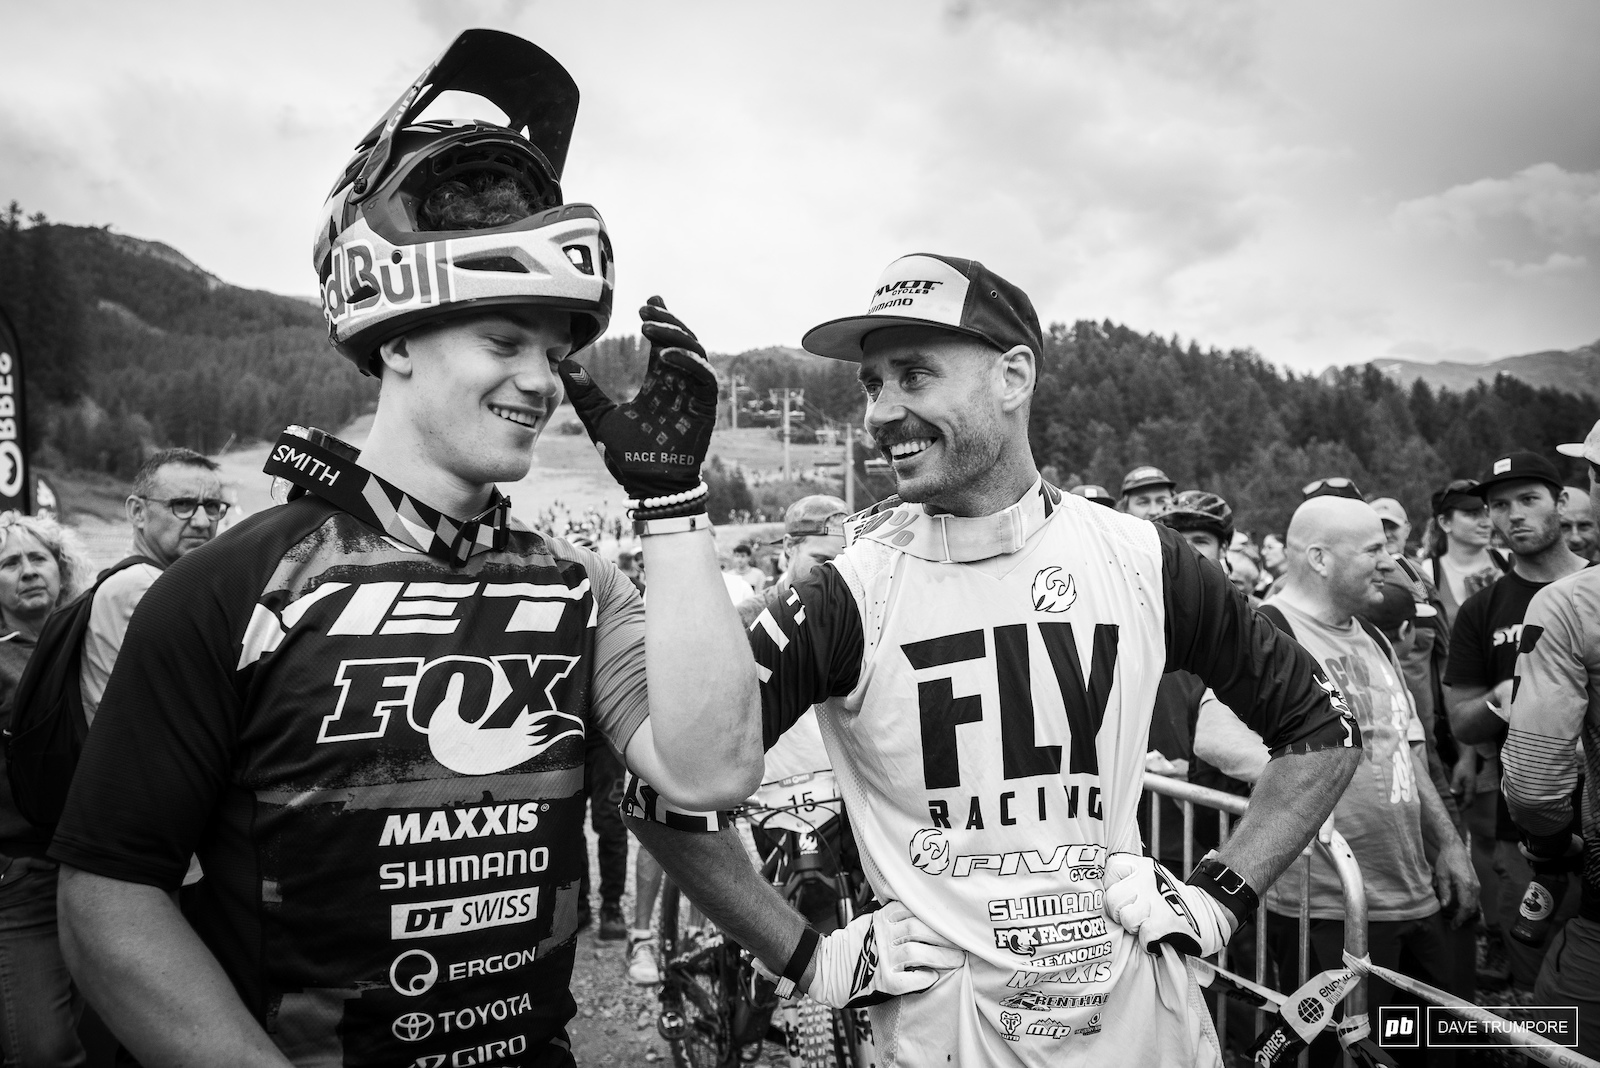 All smiles from two men who just gave us one of the most exciting two days of EWS racing ever.